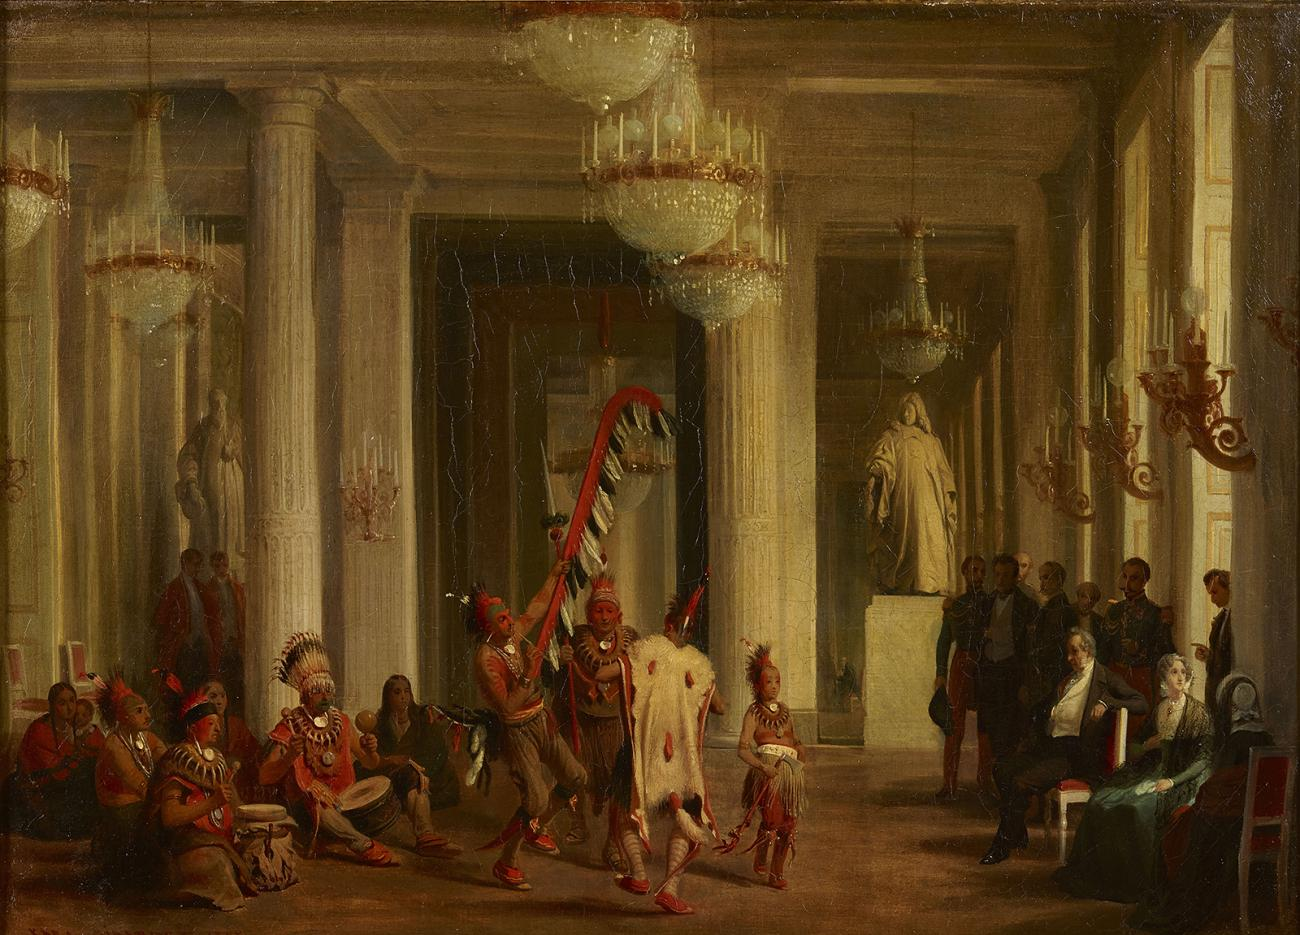 A painting of an interior room with people